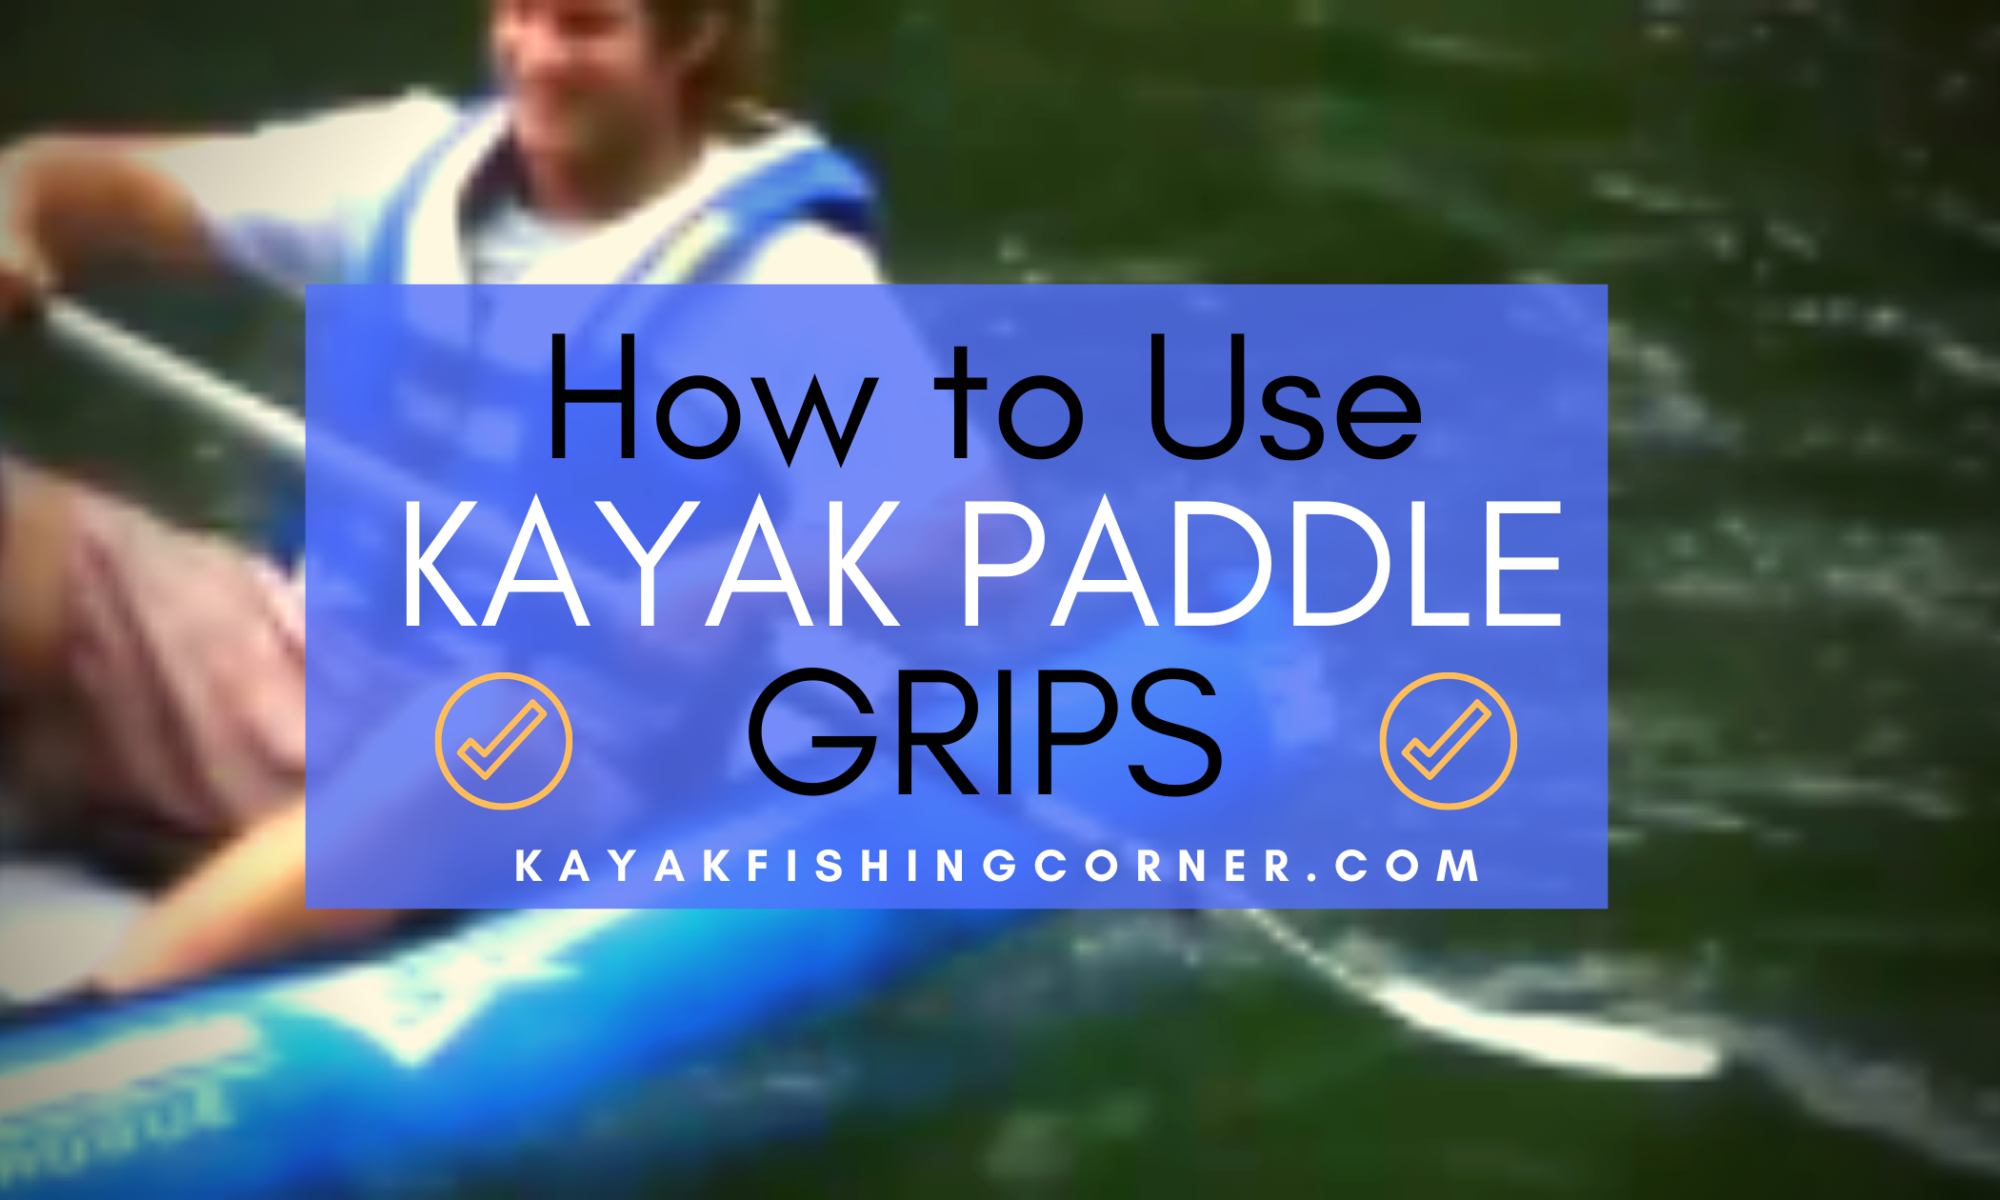 HOW TO USE KAYAK PADDLE GRIPS